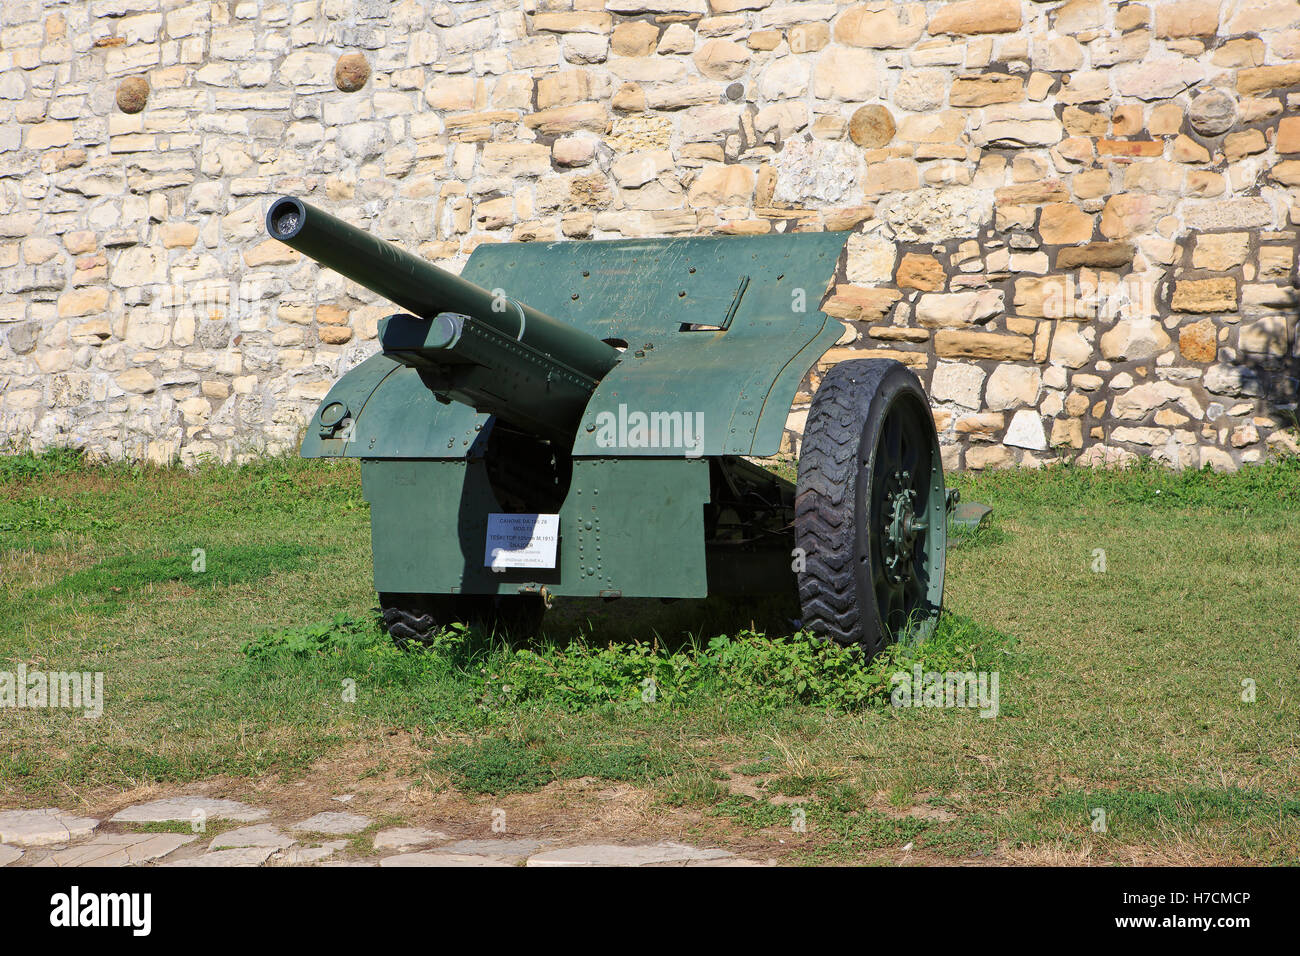 The French World War I Canon de 105 mle 1913 Schneider at the Military Museum in Belgrade, Serbia - Stock Image